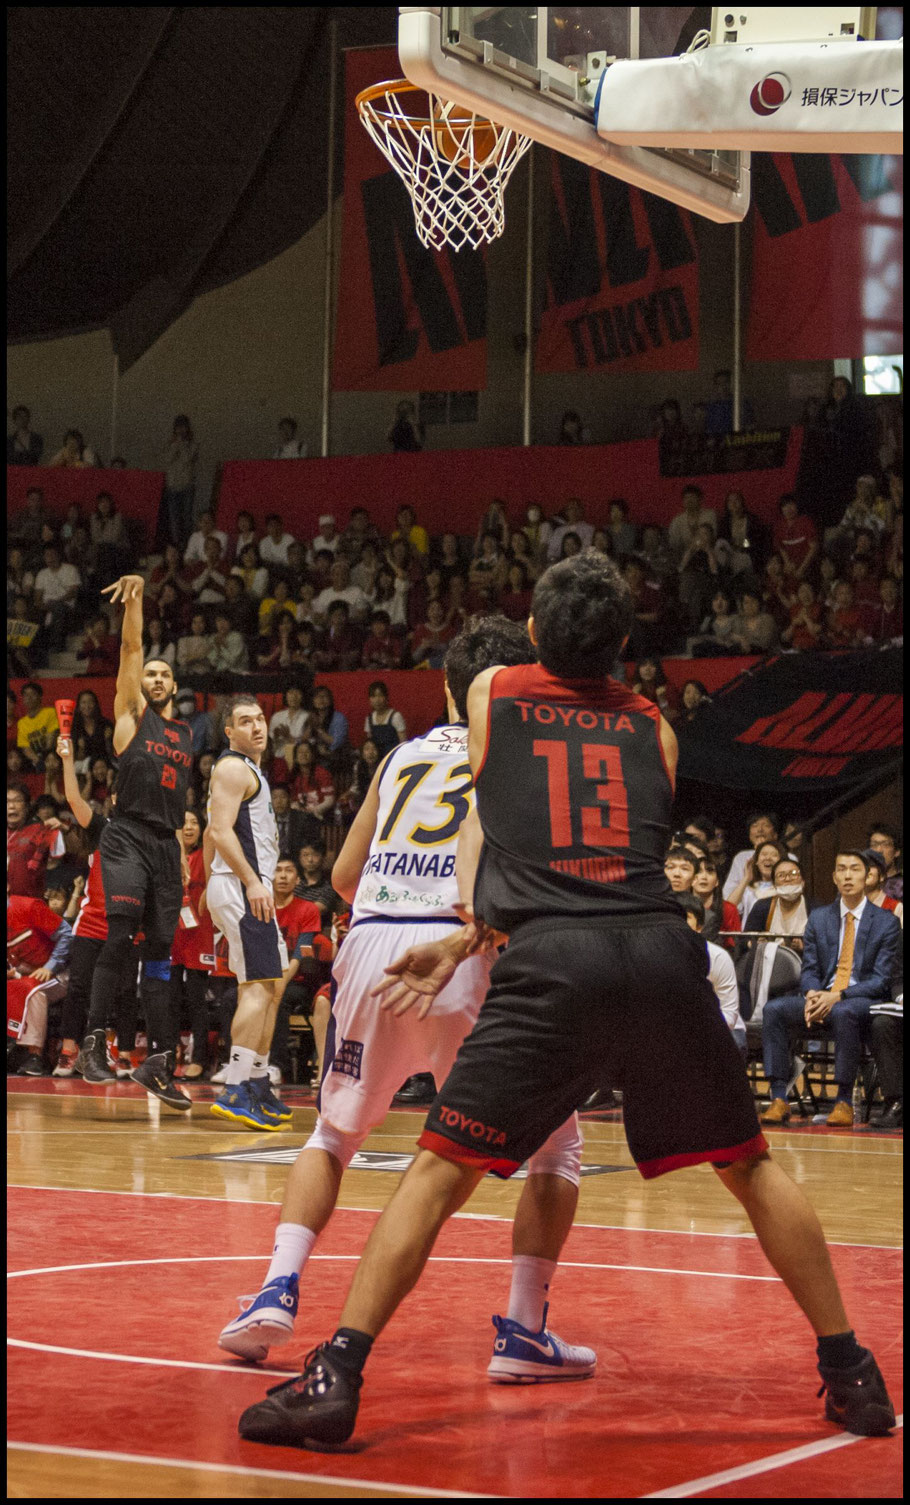 Brex secured the win when this Jeff Ayres 3-point attempt fell short.  — Chris Pfaff, Inside Sport: Japan, May 3, 2017